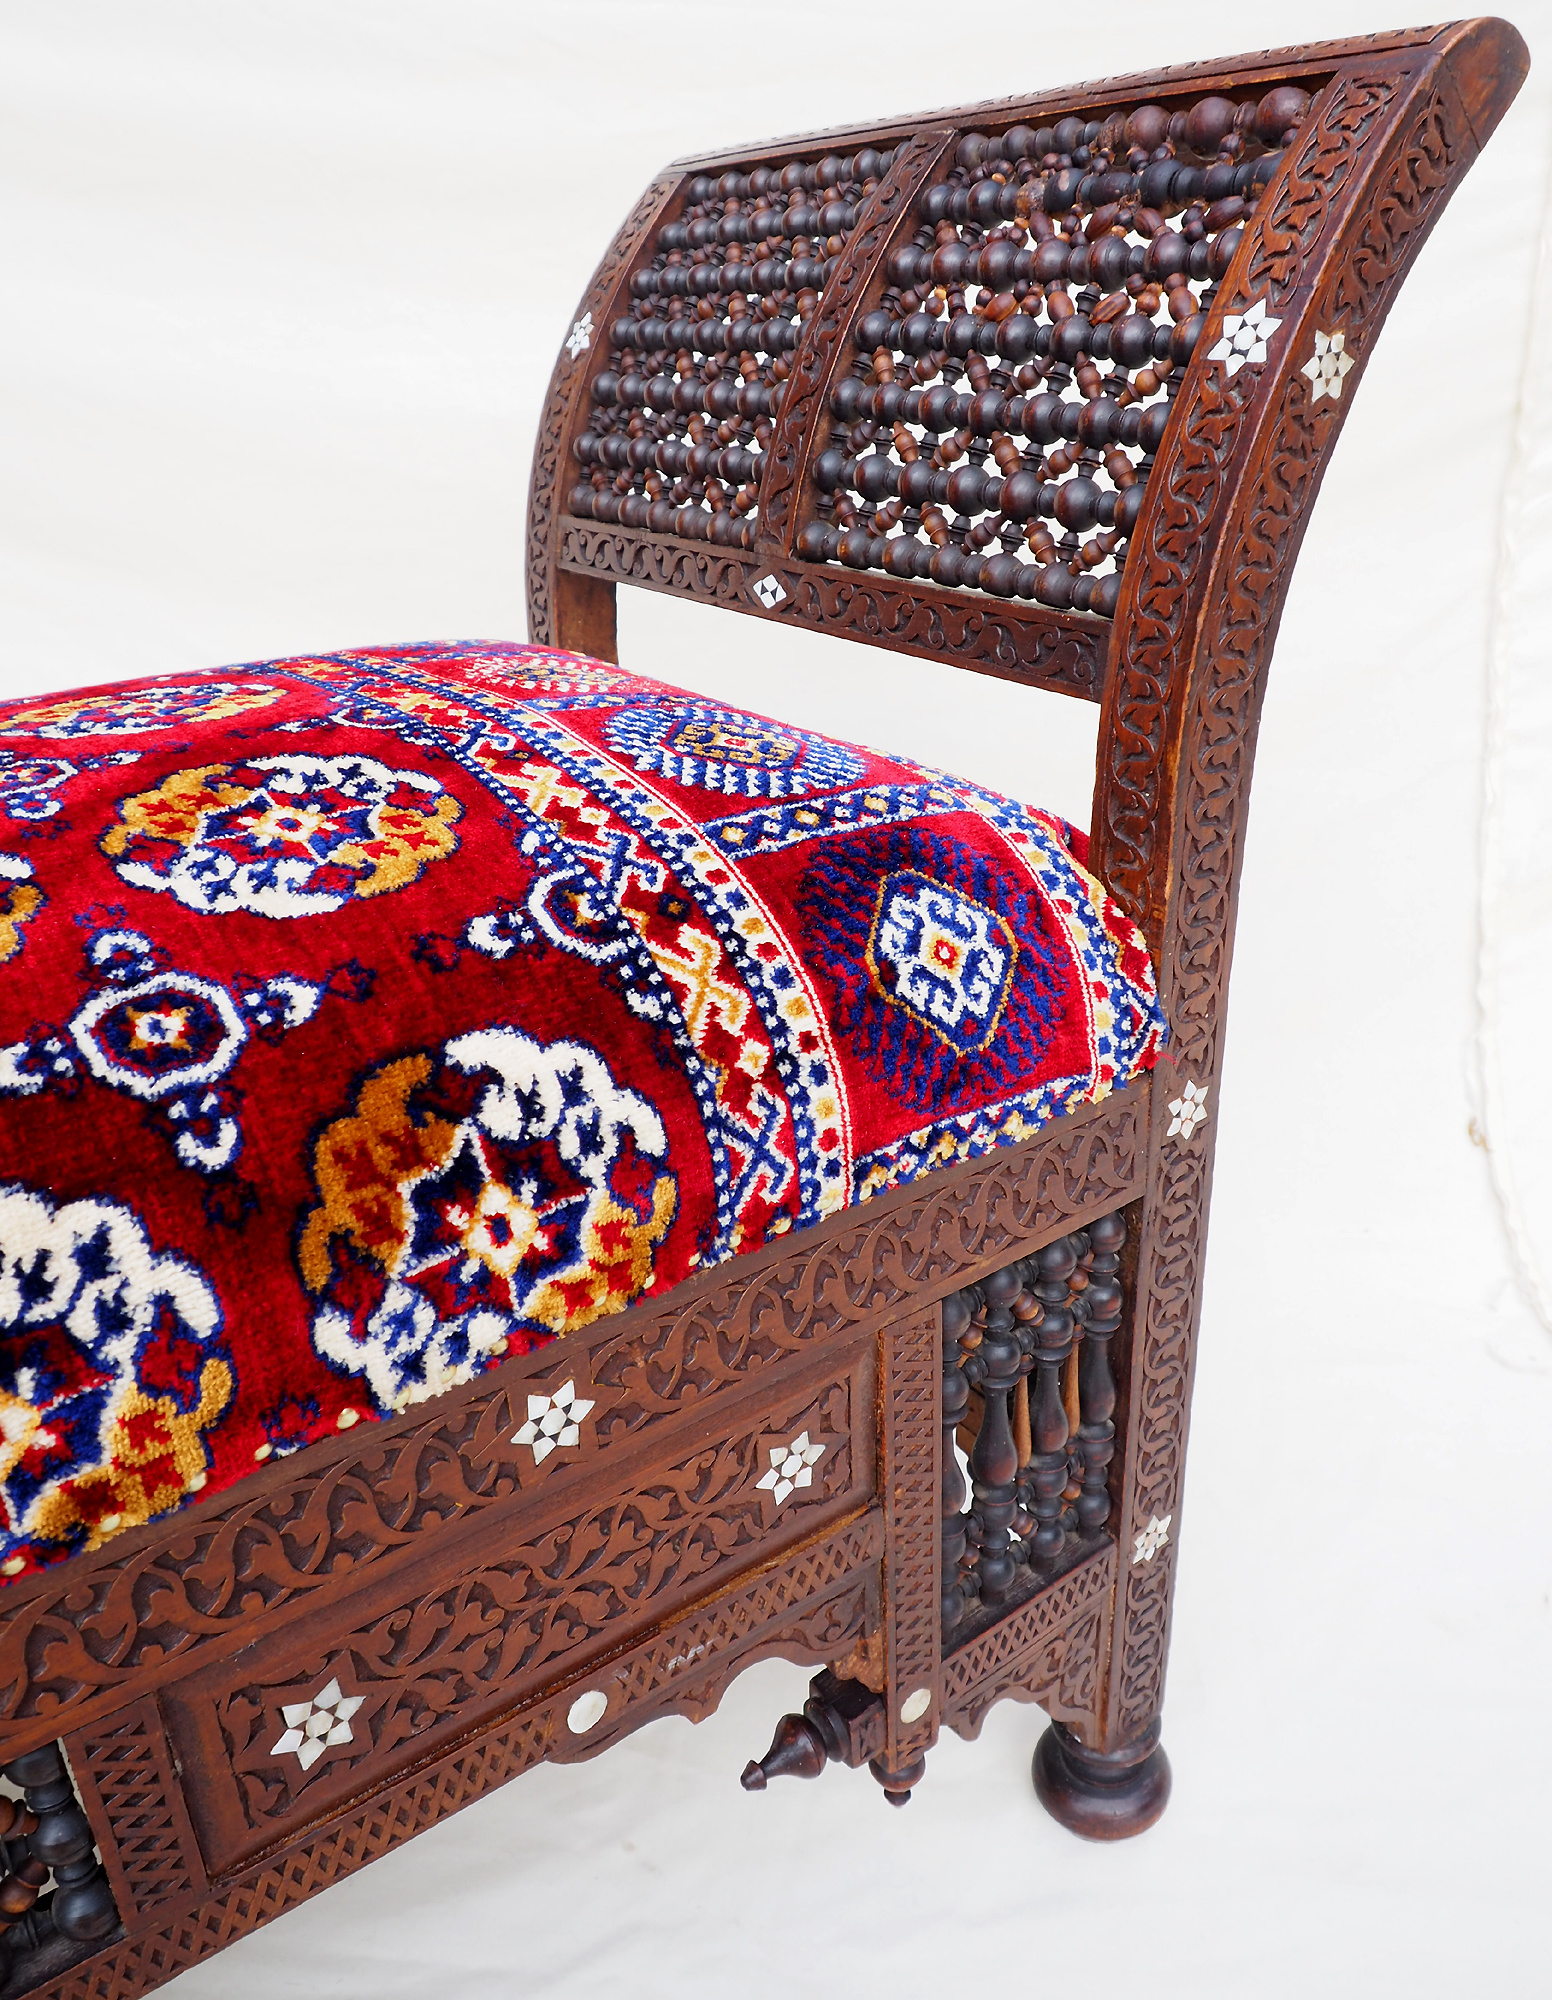 antique orient islamic vintage Carved Walnut Bench Inlaid With Mother-of-pearl  carpet From Damascus, Syria Moorish art 21C